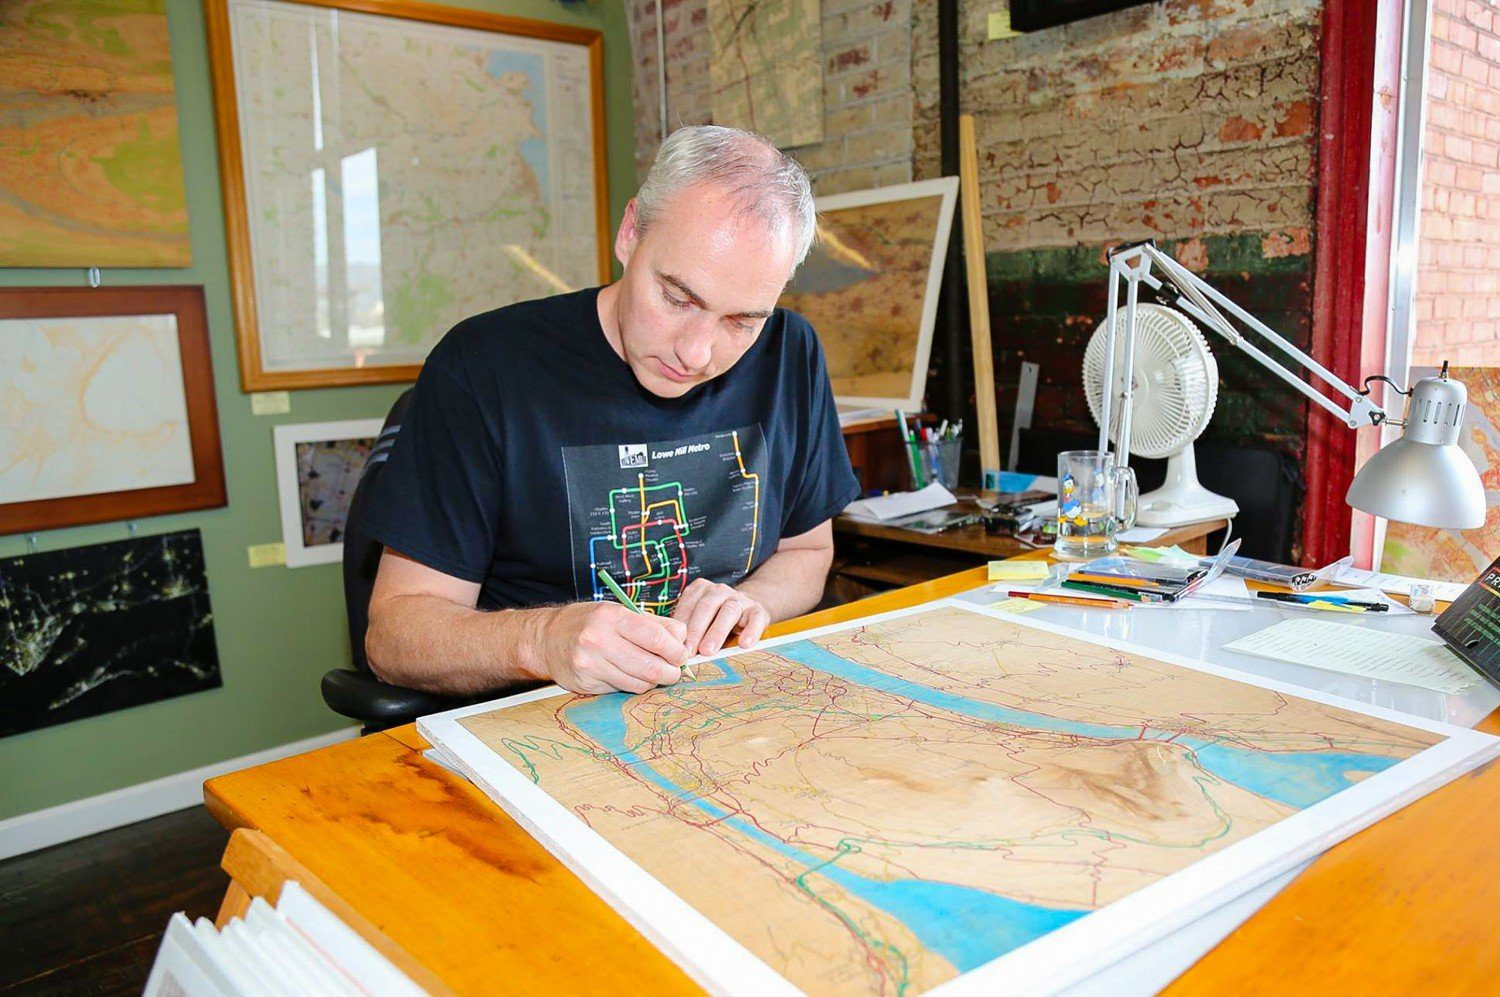 David in his studio, working on one of his maps.